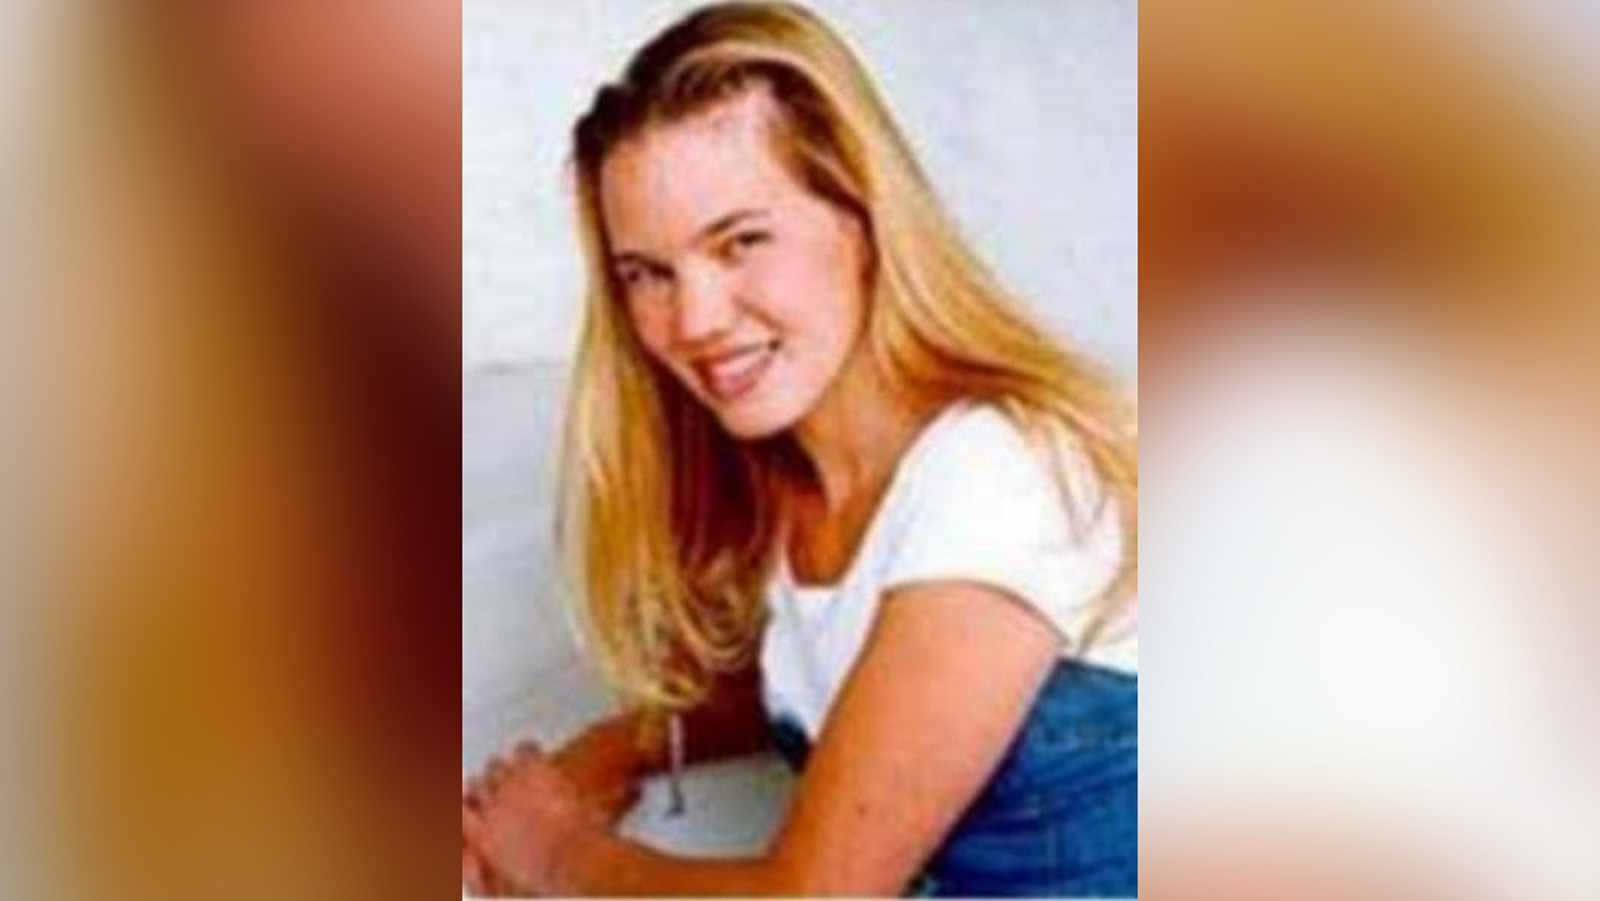 Investigators believe Kristin Smart's body was buried and 'recently' moved, court document says